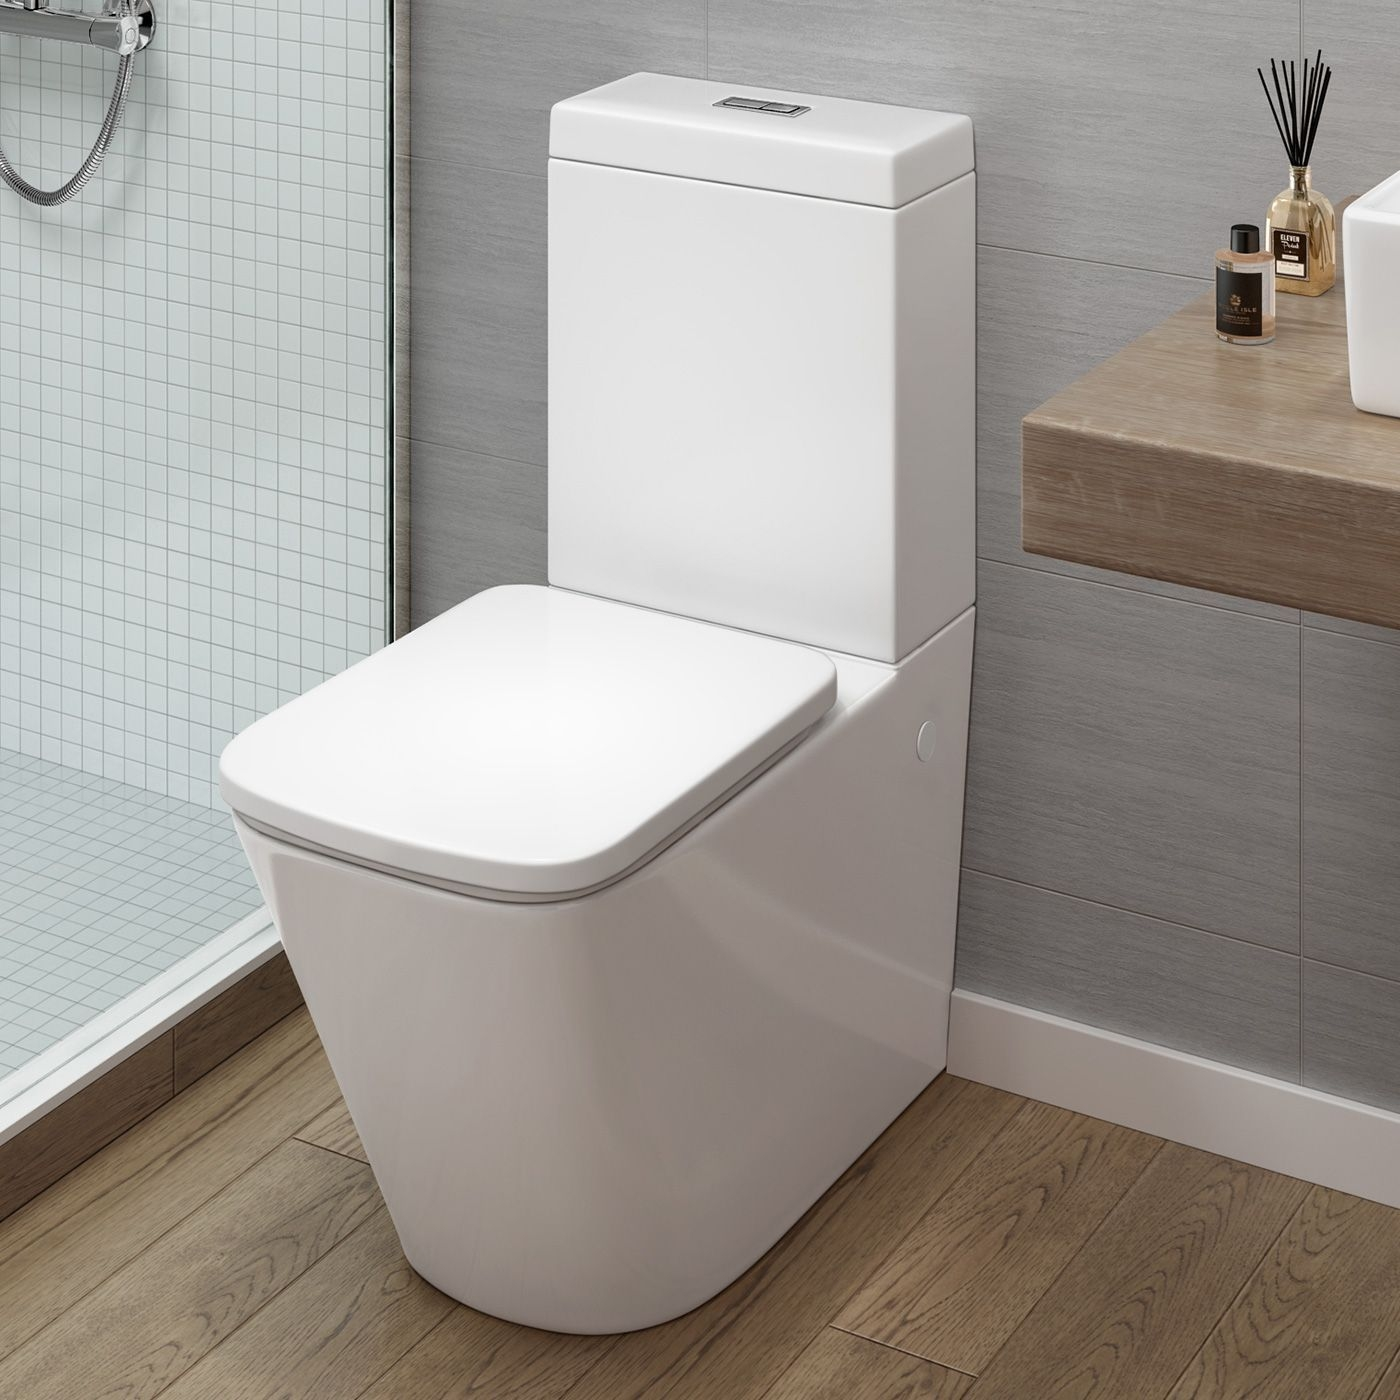 Modern Close Coupled Toilet And Cistern  Florence Square Design  Bathempire  Bathroom Toilets